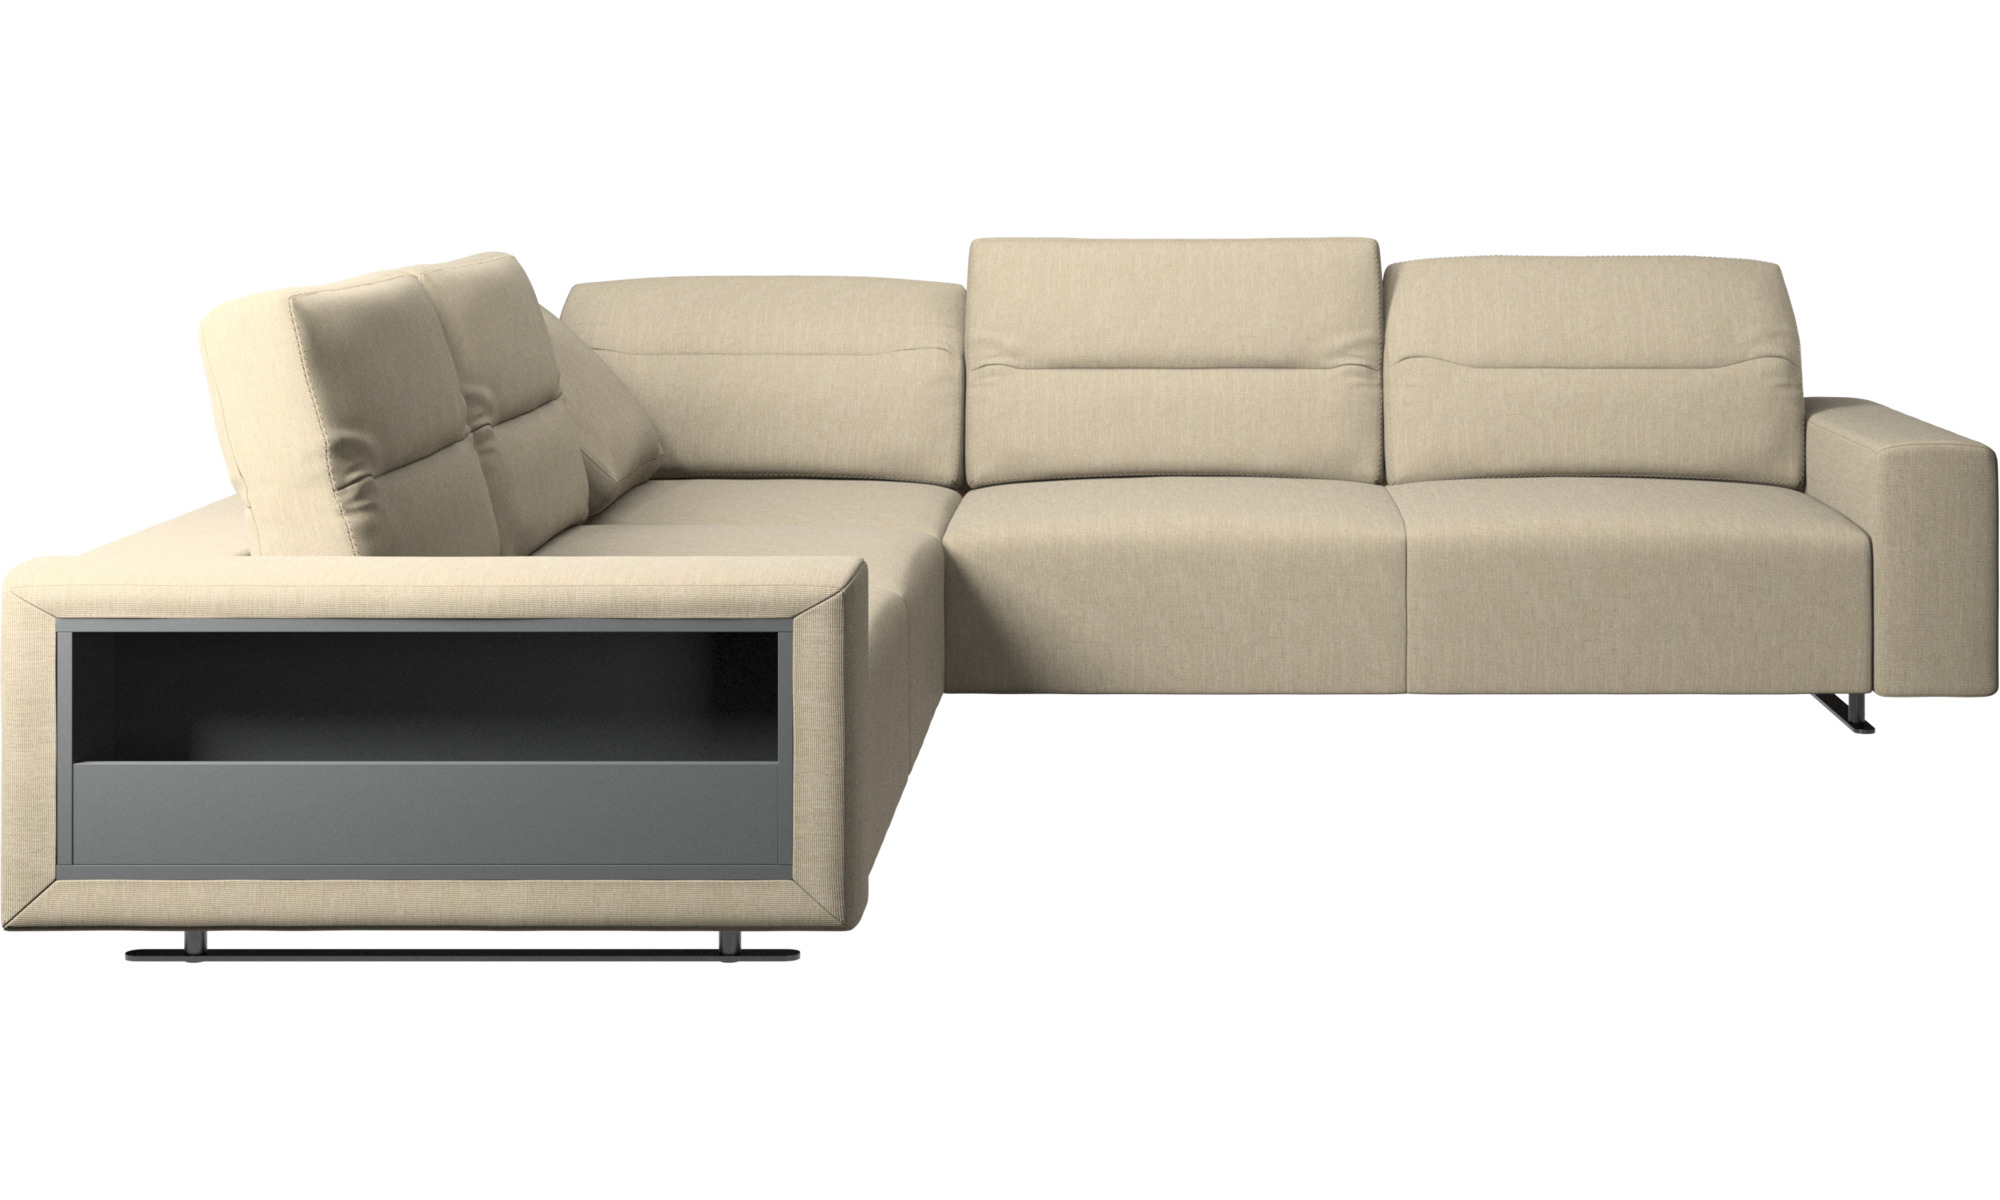 Corner sofas hampton corner sofa with adjustable back for Canape poltrone et sofa